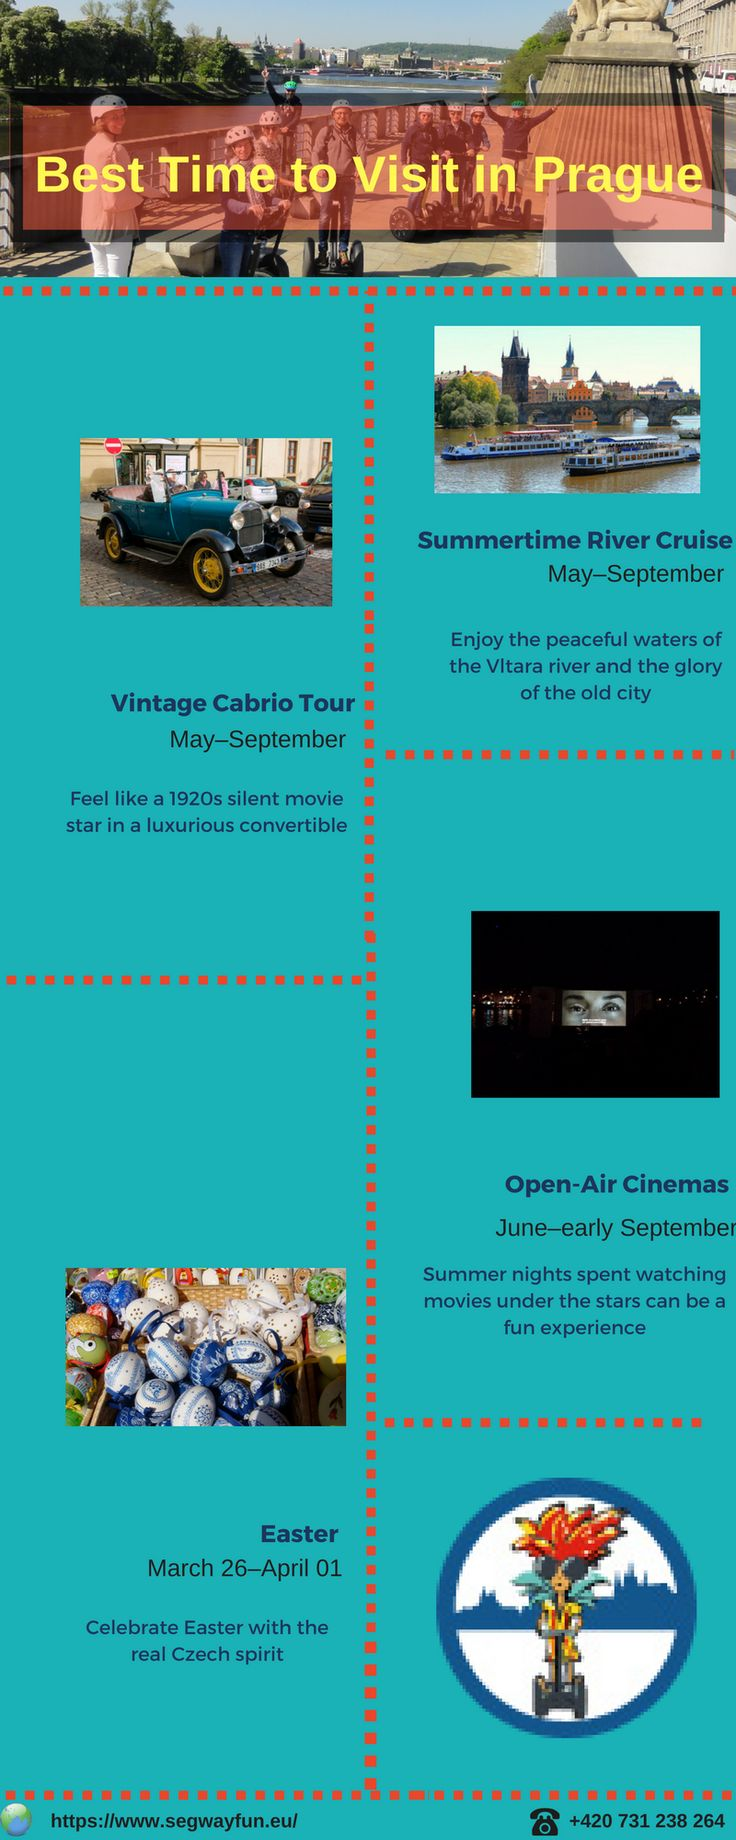 Prague is the beautiful city in Czech Republic. #Prague #city #tour offers many memorable tour to it's visitor. This infographic will help you to know the best time to visit Prague.